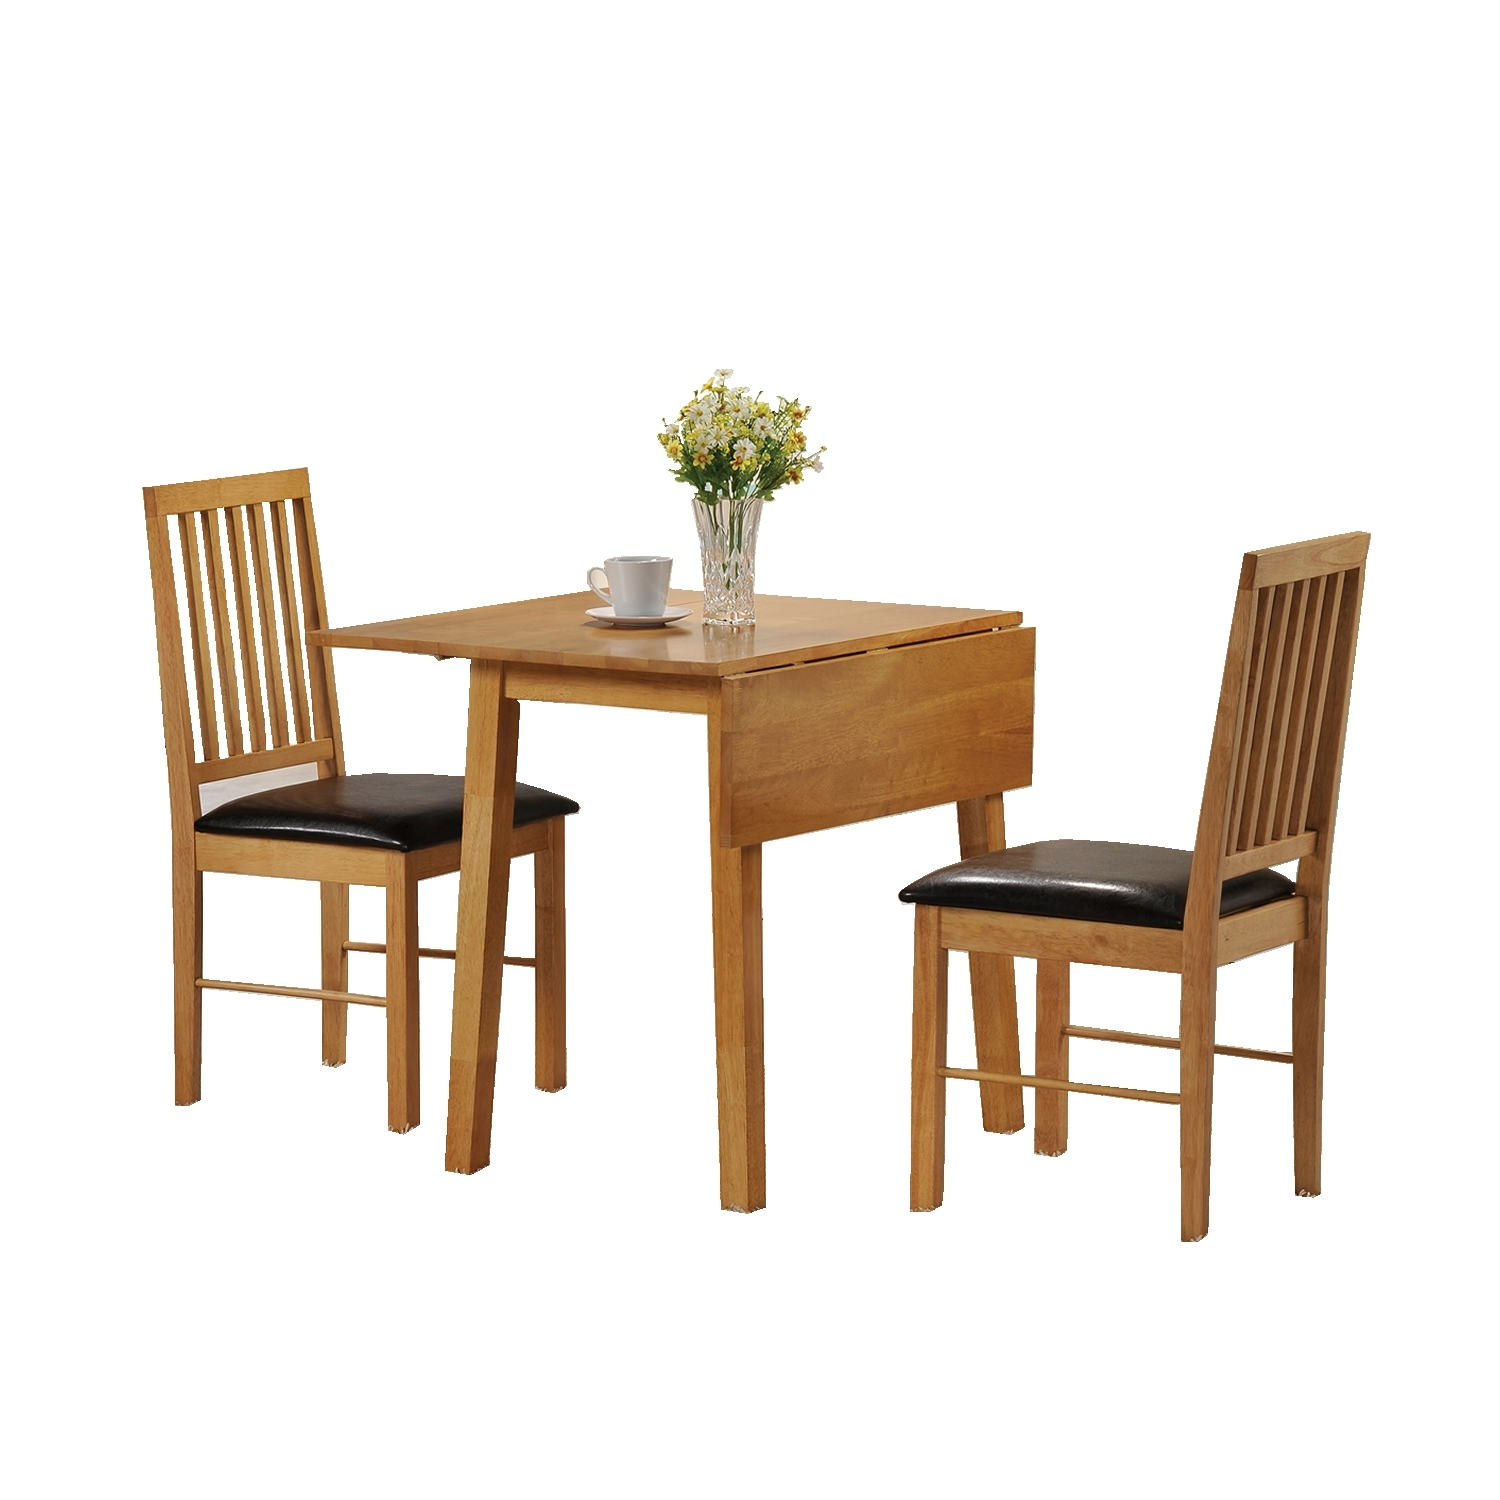 Most Recent Small Dining Tables For 2 Pertaining To Dining Table And 2 Chairs Set 2 Seater Drop Leaf Set, Small Dining (View 13 of 25)